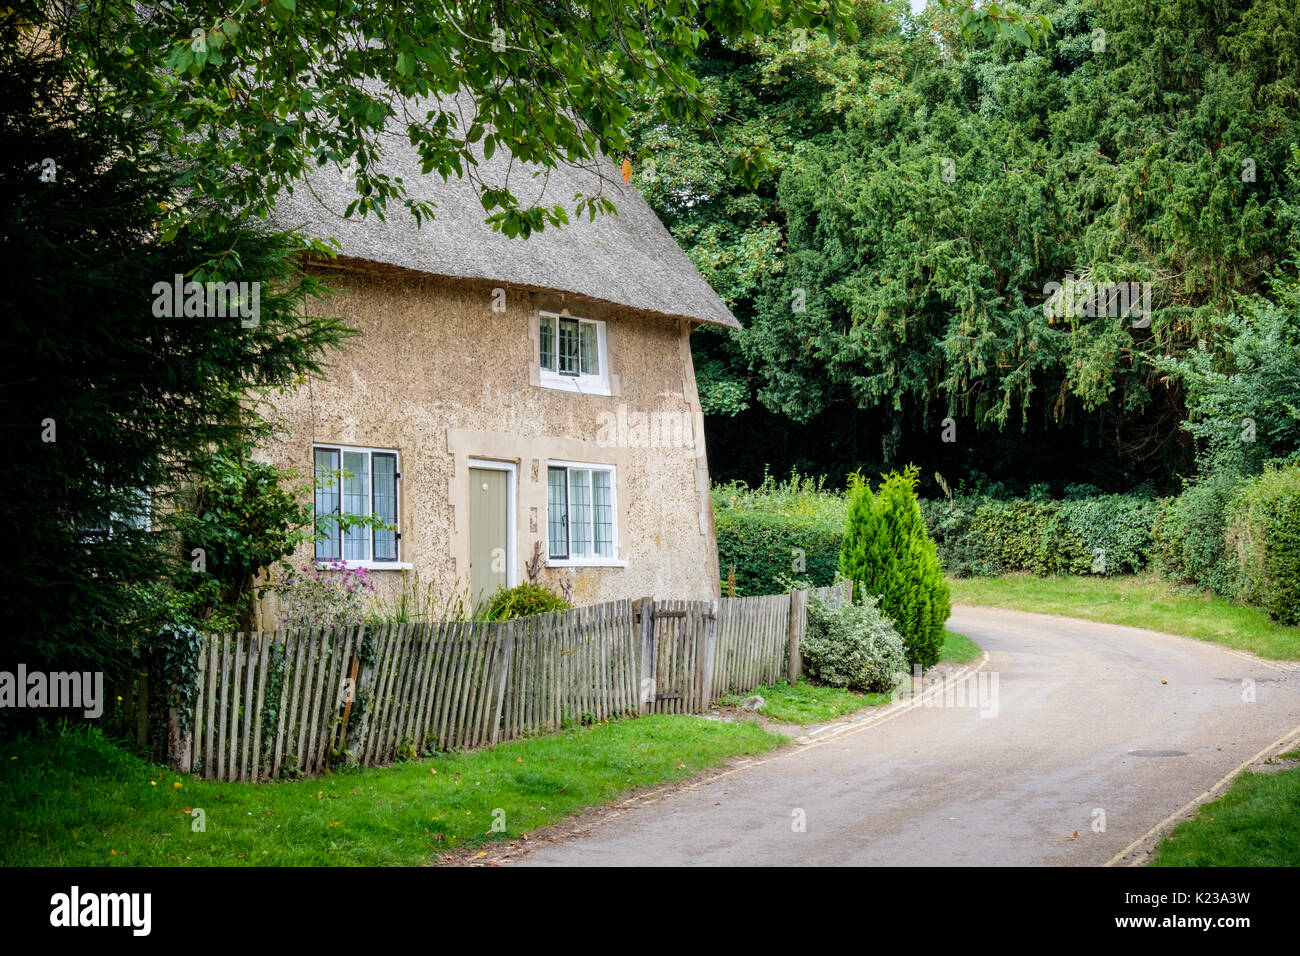 Traditional country cottage near Blickling, Norfolk, UK (taken from the public road) - Stock Image